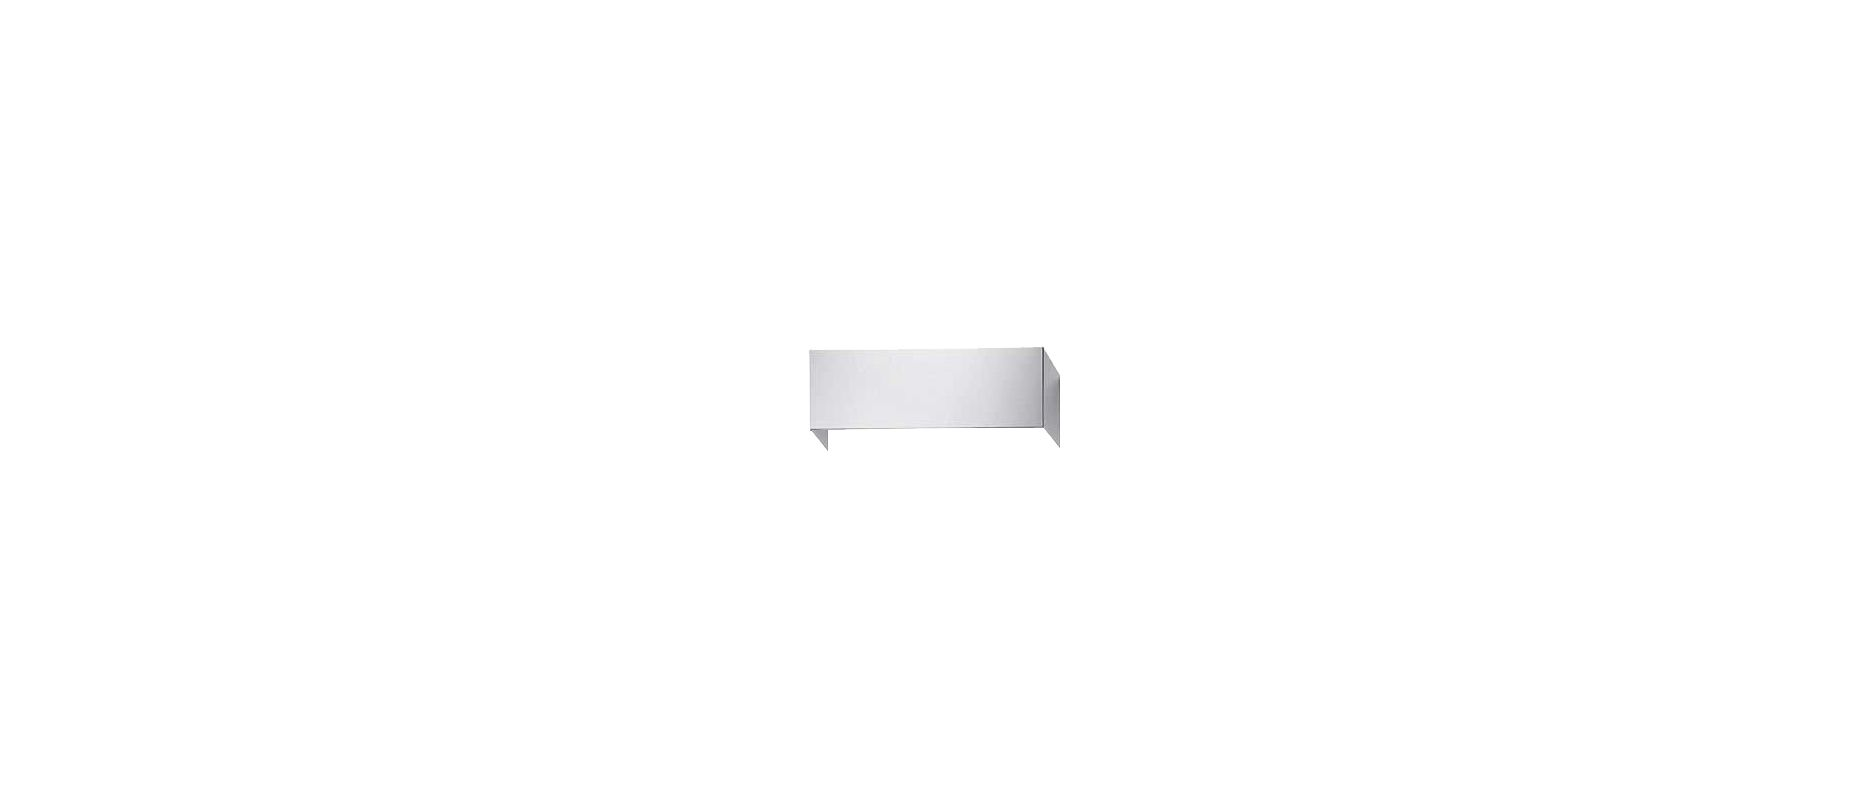 Viking DCW36 36 Inch Wide Duct Cover for Wall Mounted Range Hoods photo